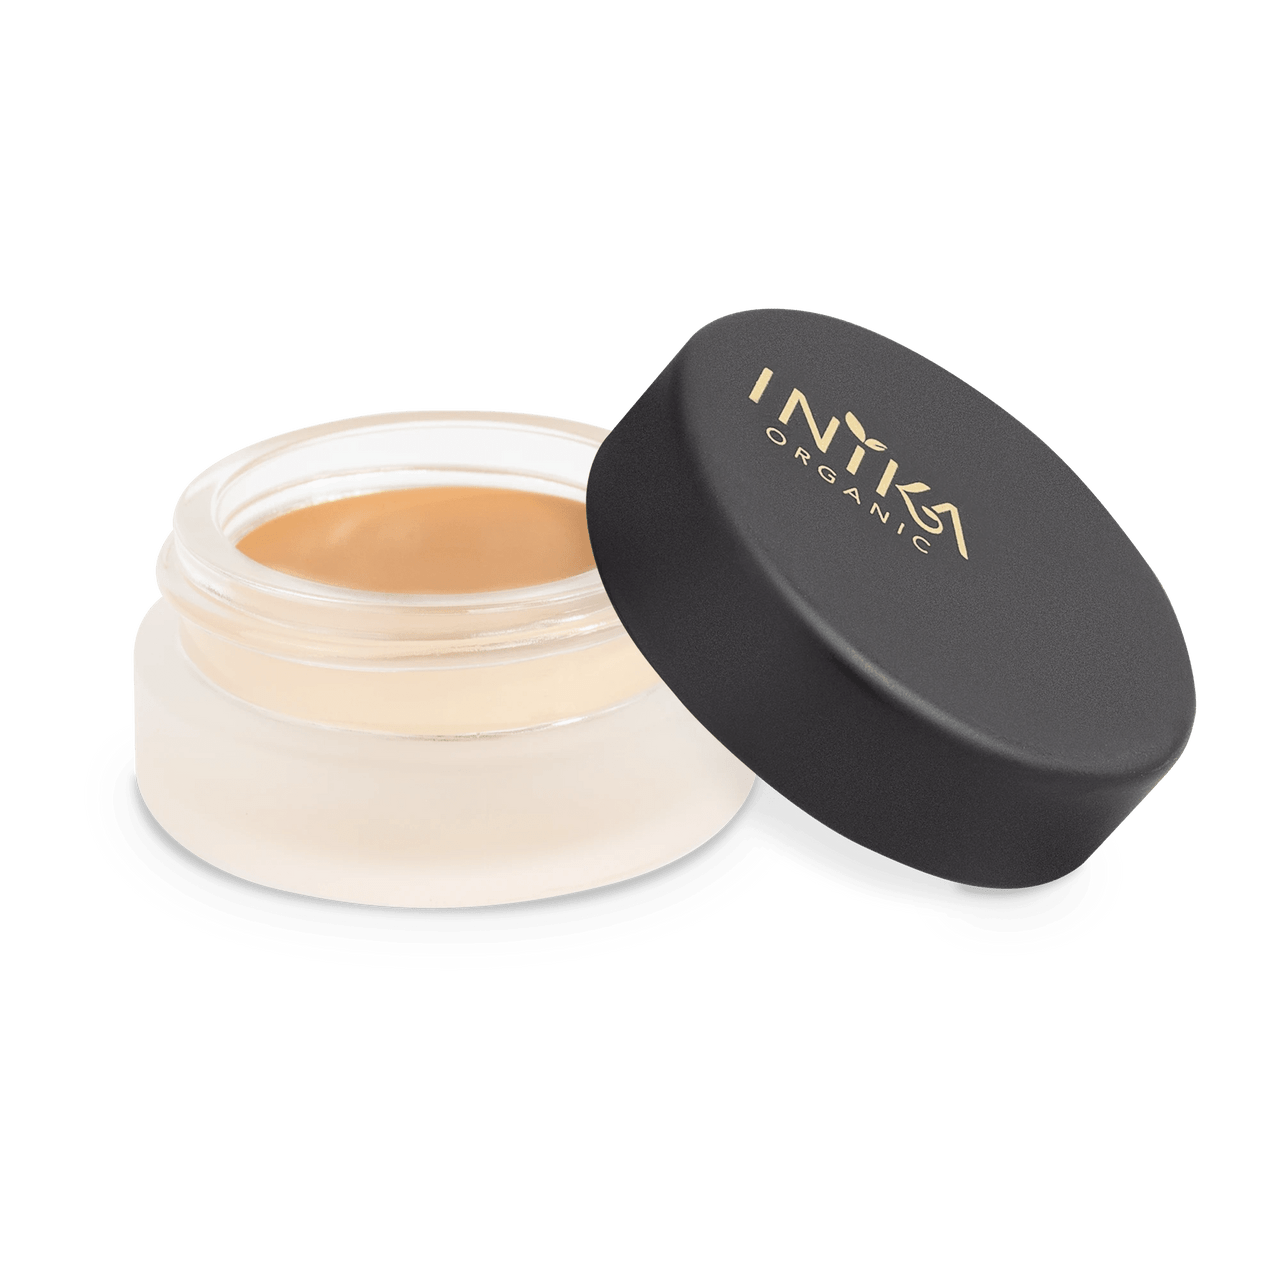 Certified Organic Full Coverage Concealer (Tawny) 3.5g